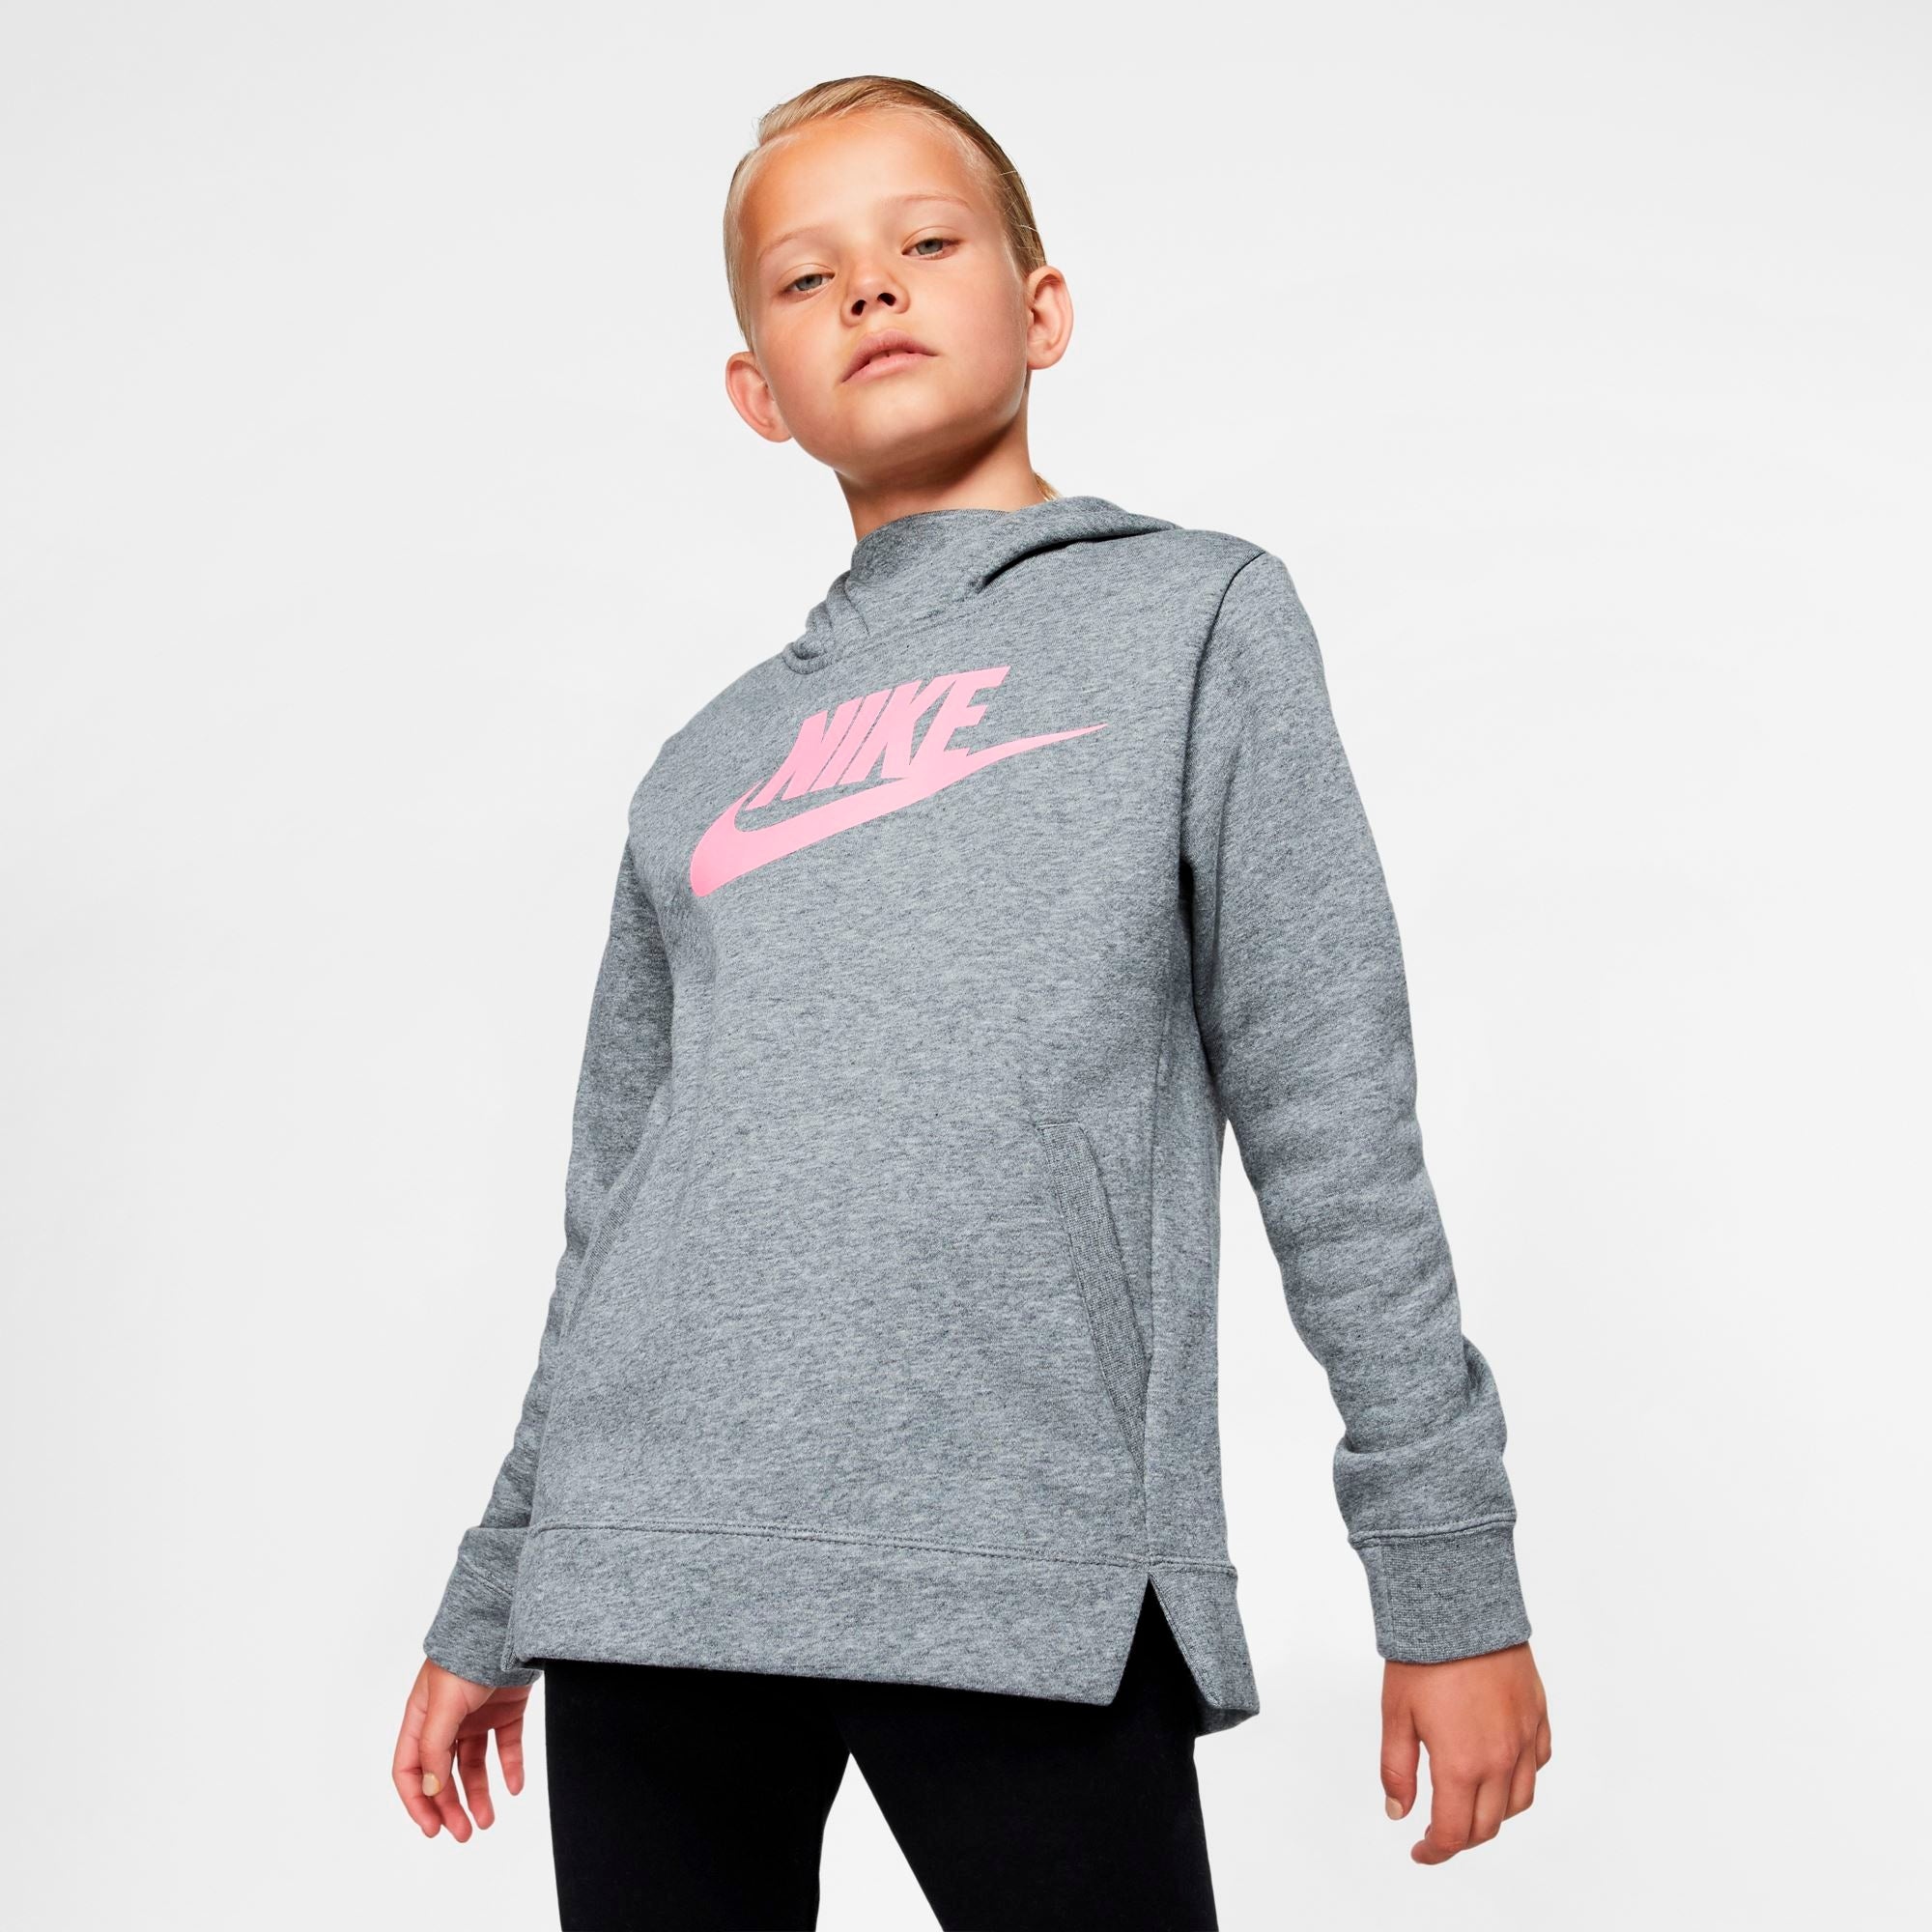 Nike Sportswear Girls' Pullover Hoodie - Carbon Heather/Carbon Heather/Pink SP-ApparelFleece-Kids Nike